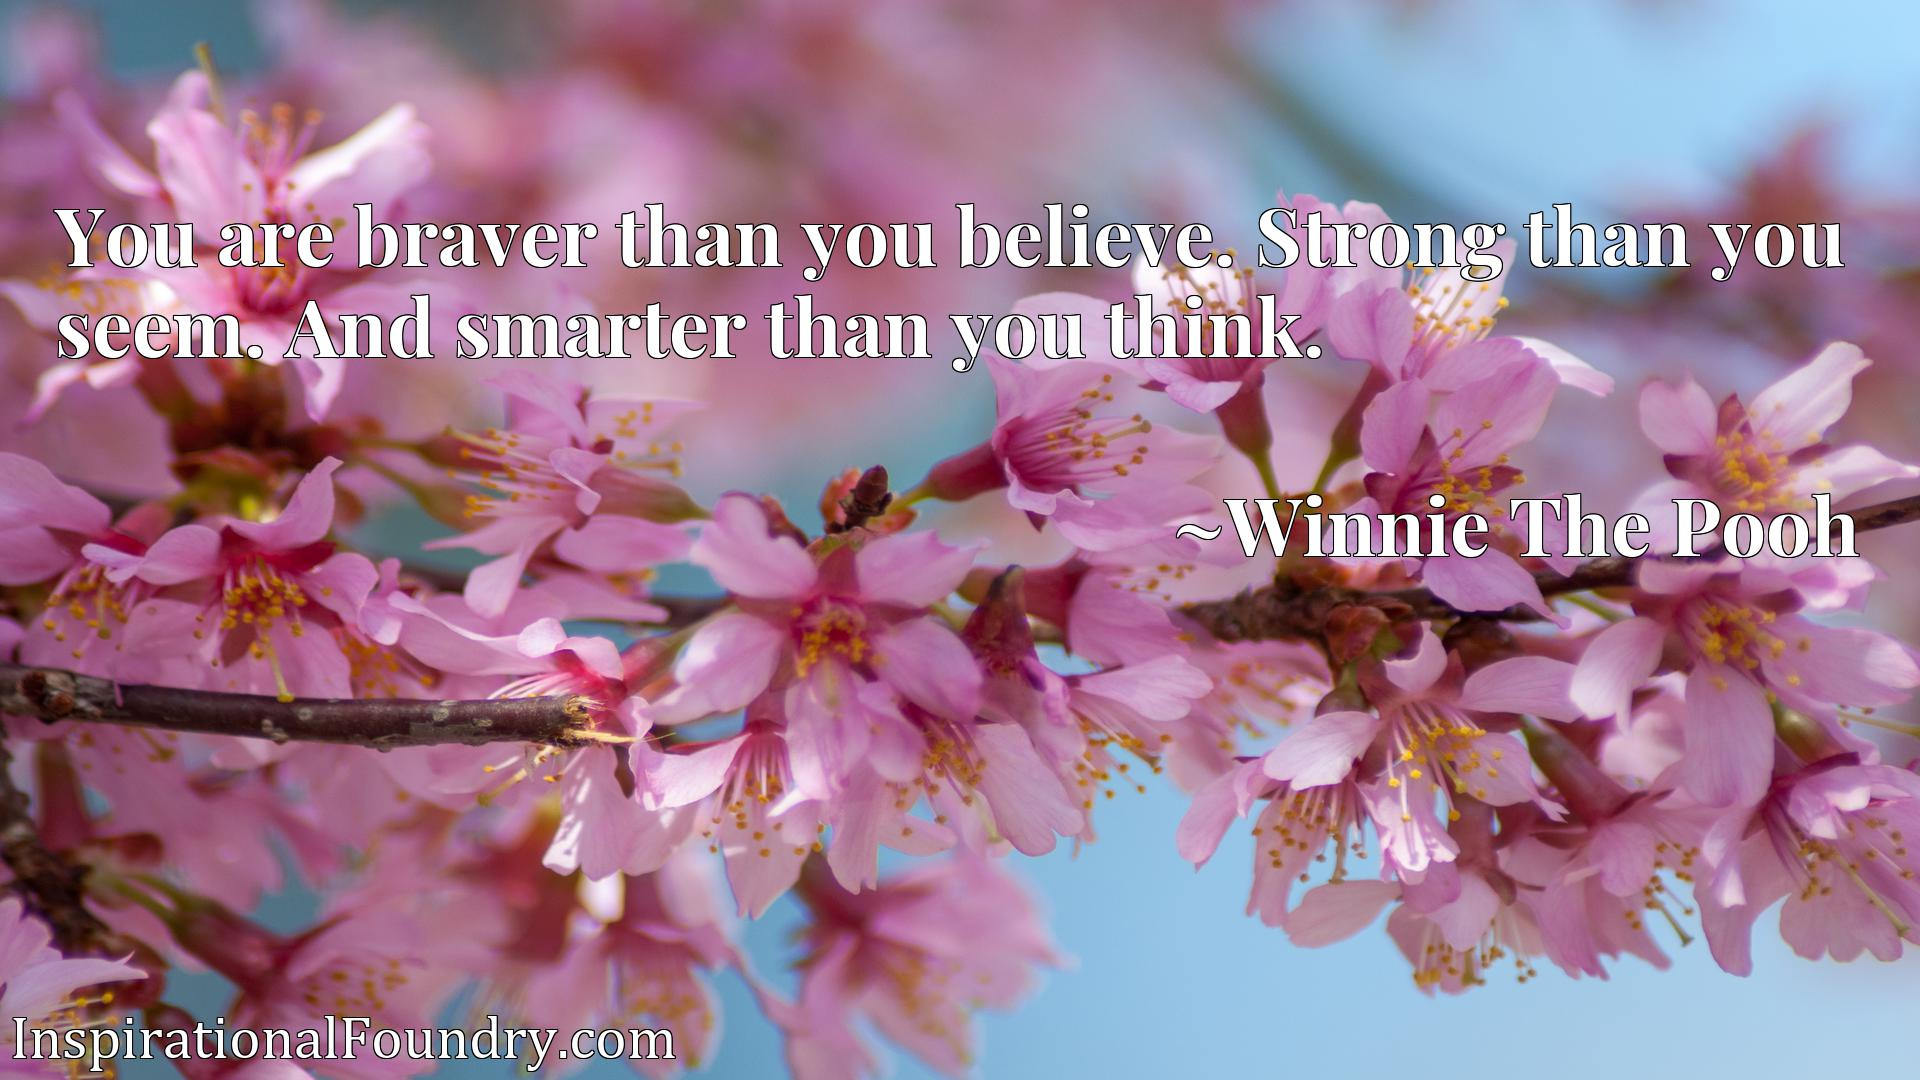 You are braver than you believe. Strong than you seem. And smarter than you think.